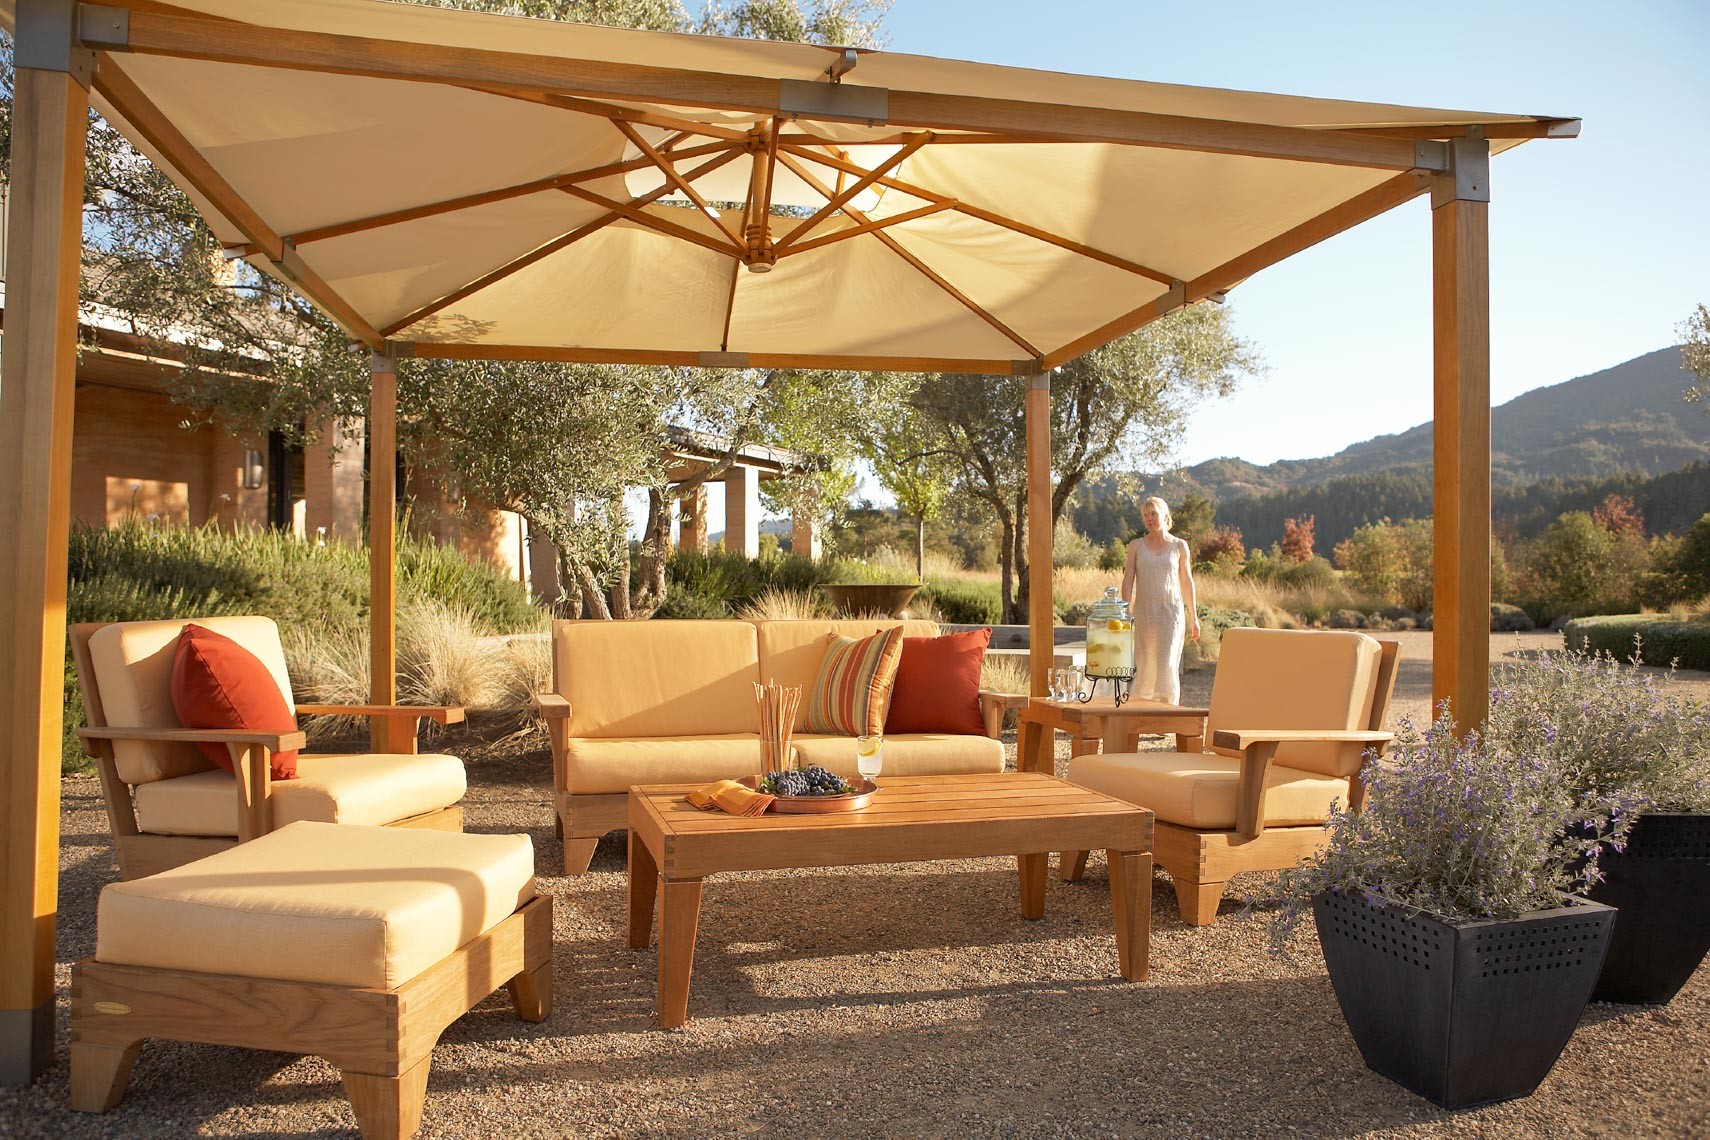 Teak furniture collection with large canvas structure on outdoor patio